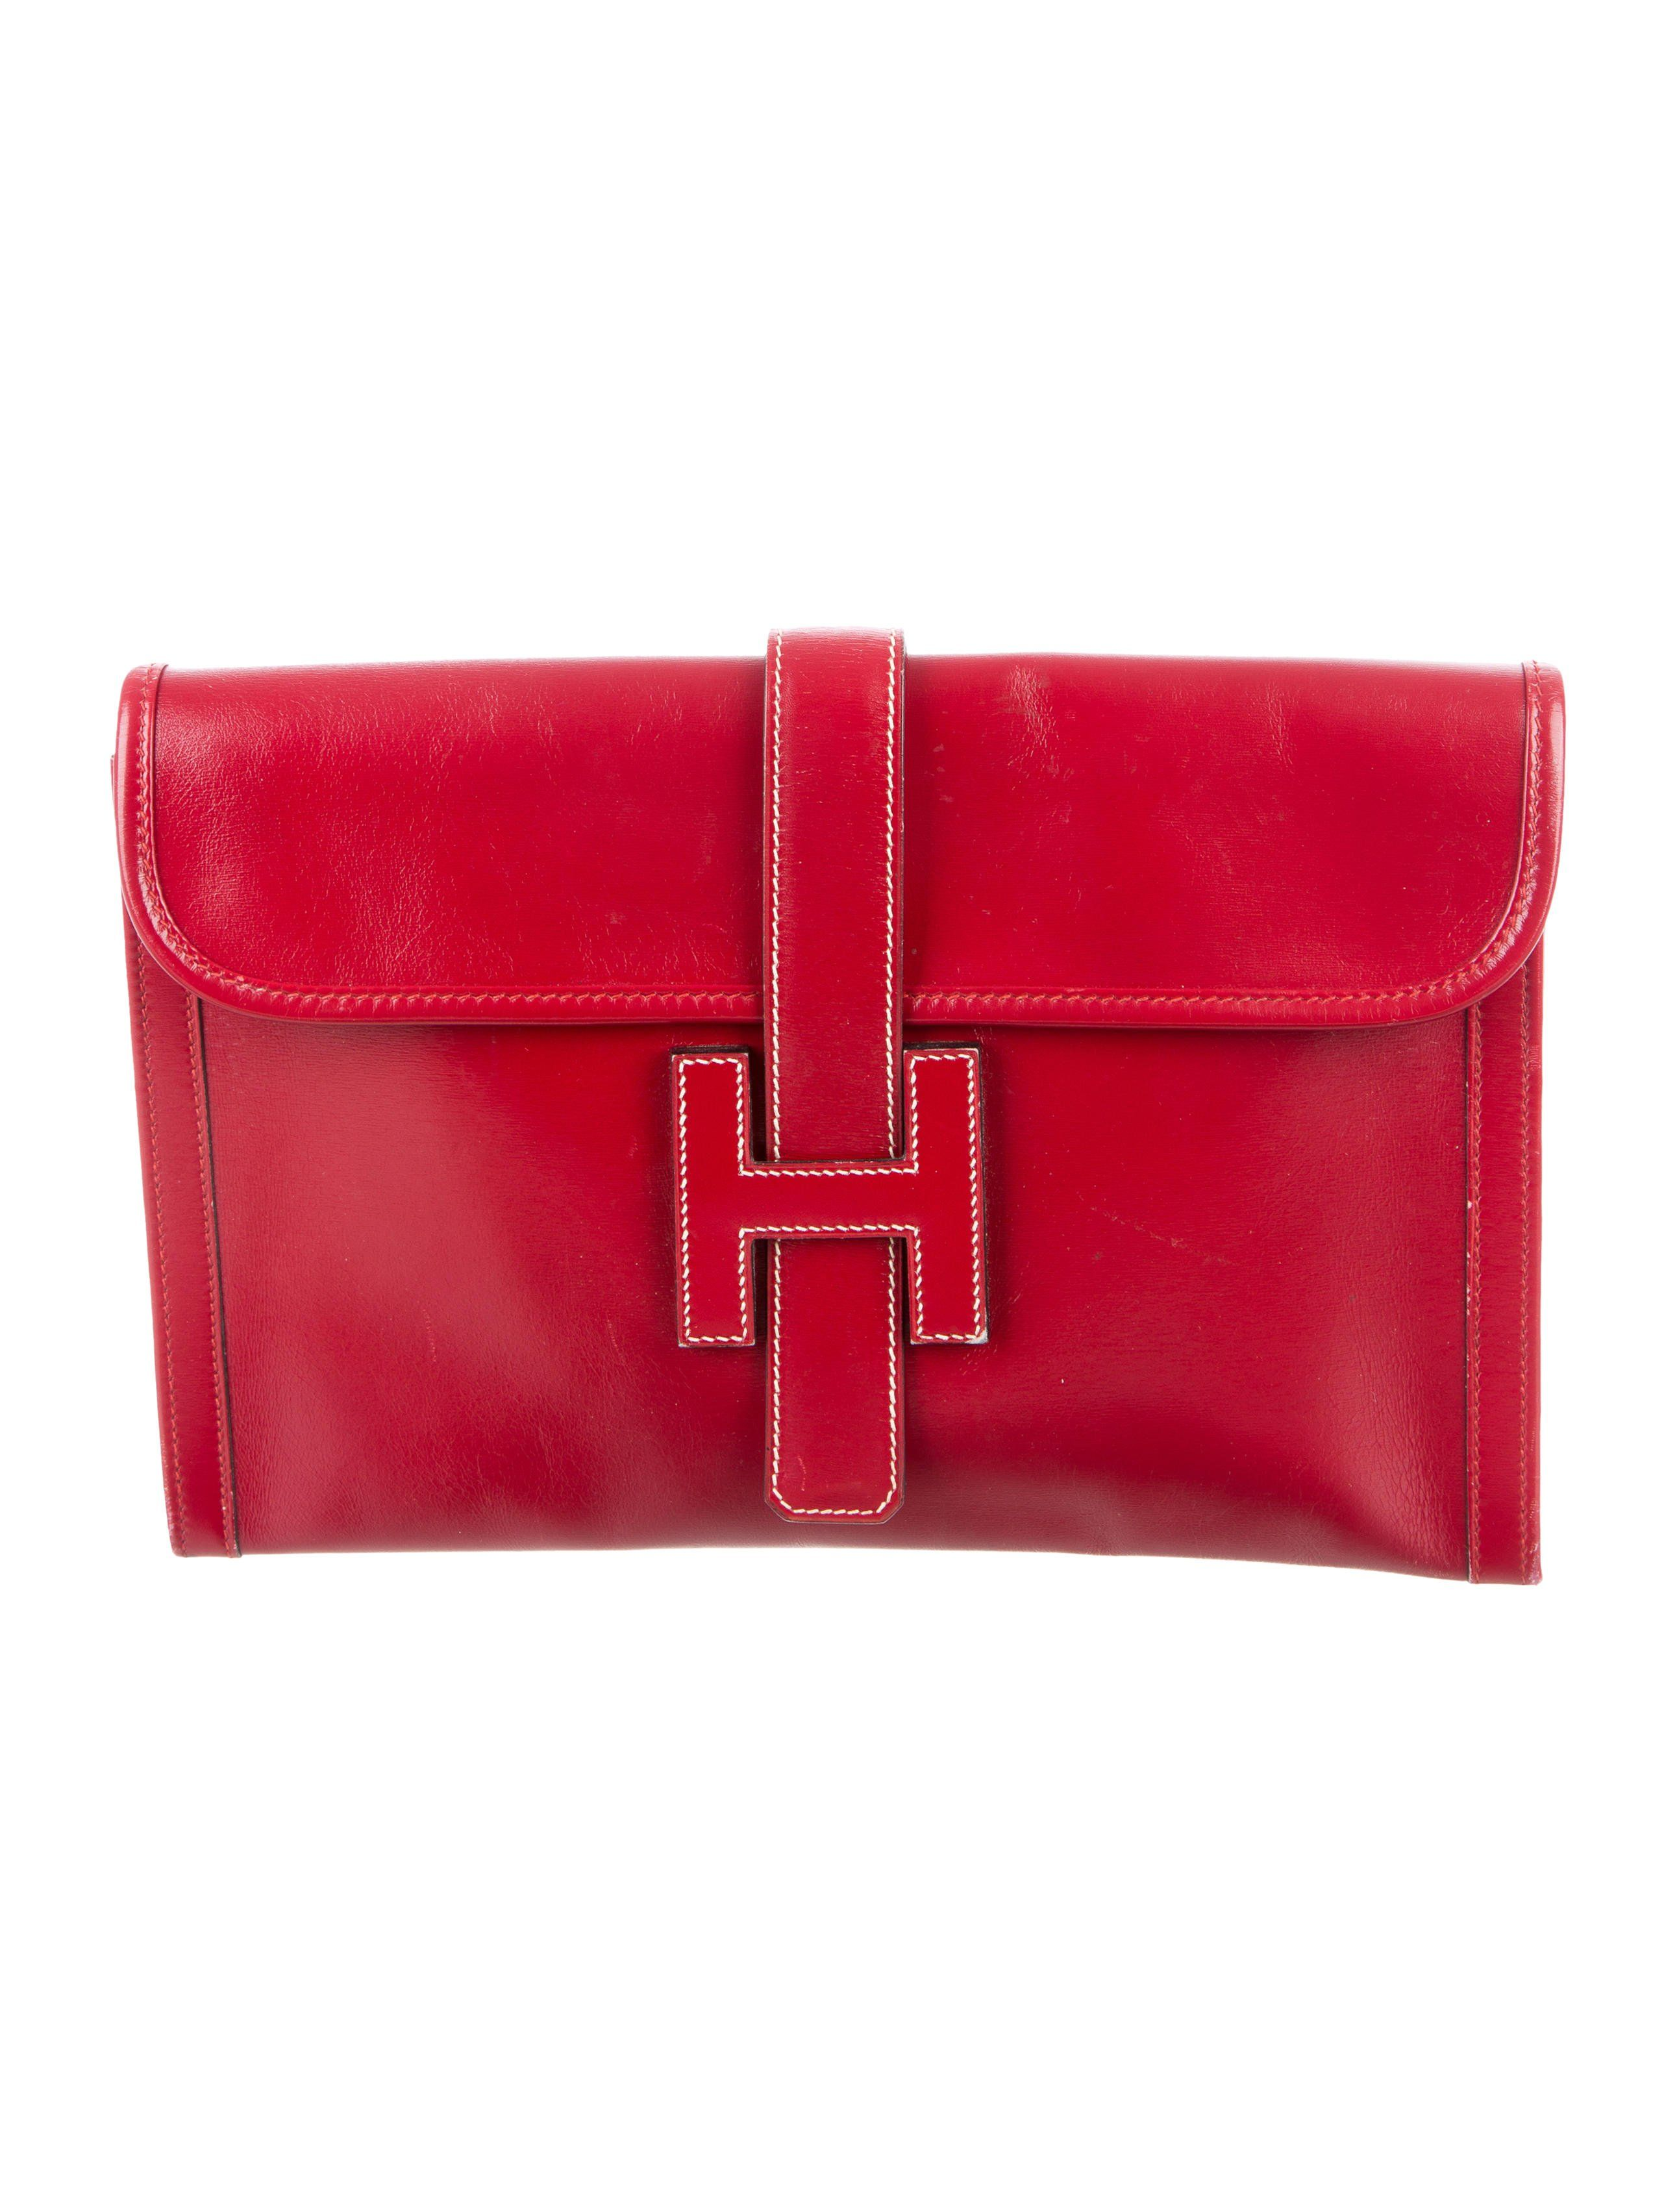 a7409d3cf645 Vermillion Box leather Hermès Jige 29 with creme stitching throughout